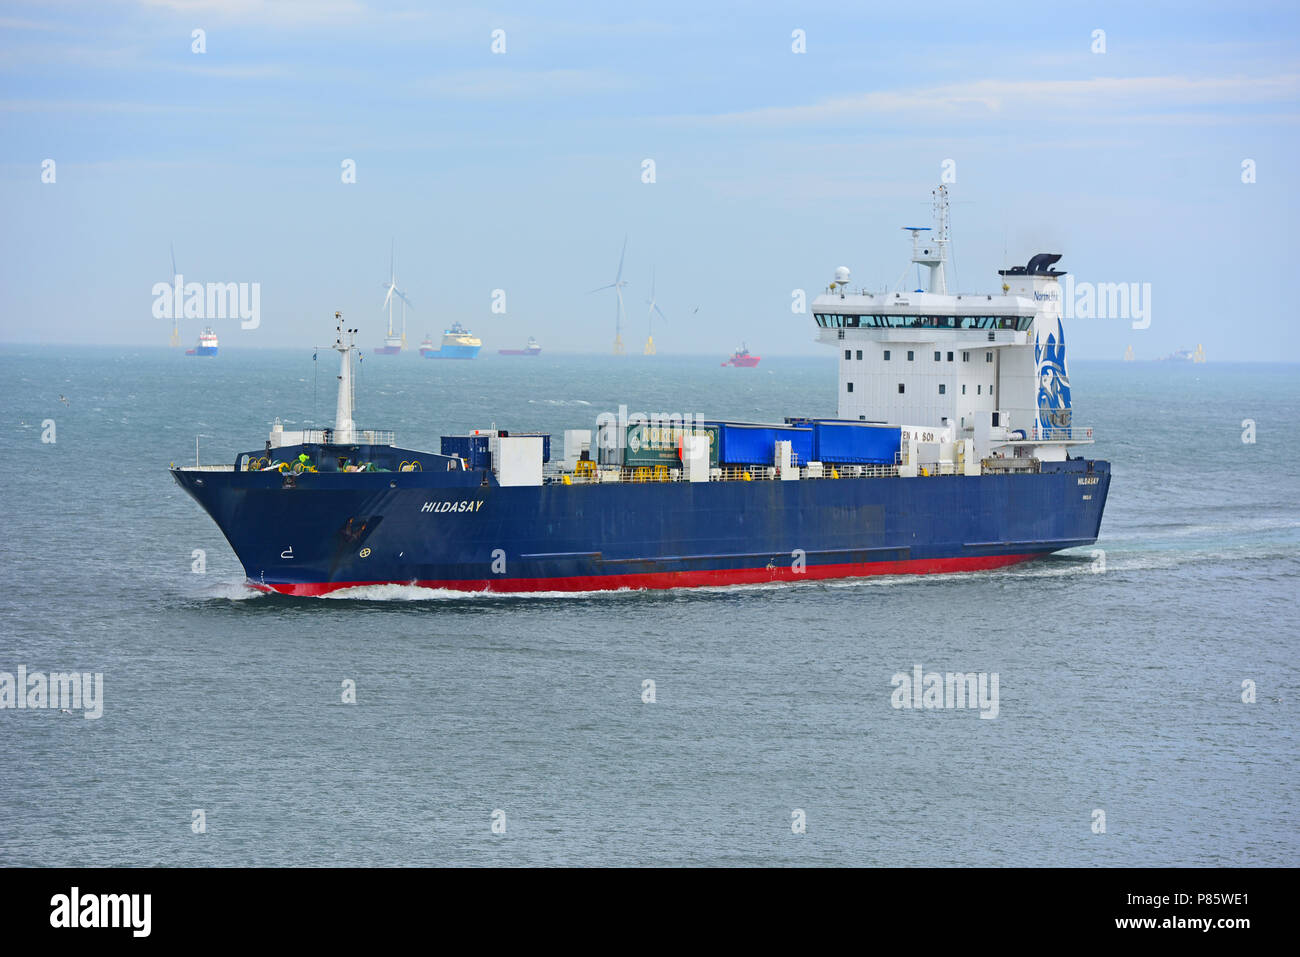 The Northlink Cargo Ferry Hildasay approaching the breakwater just outside the entrance to Aberdeen Harbour. - Stock Image